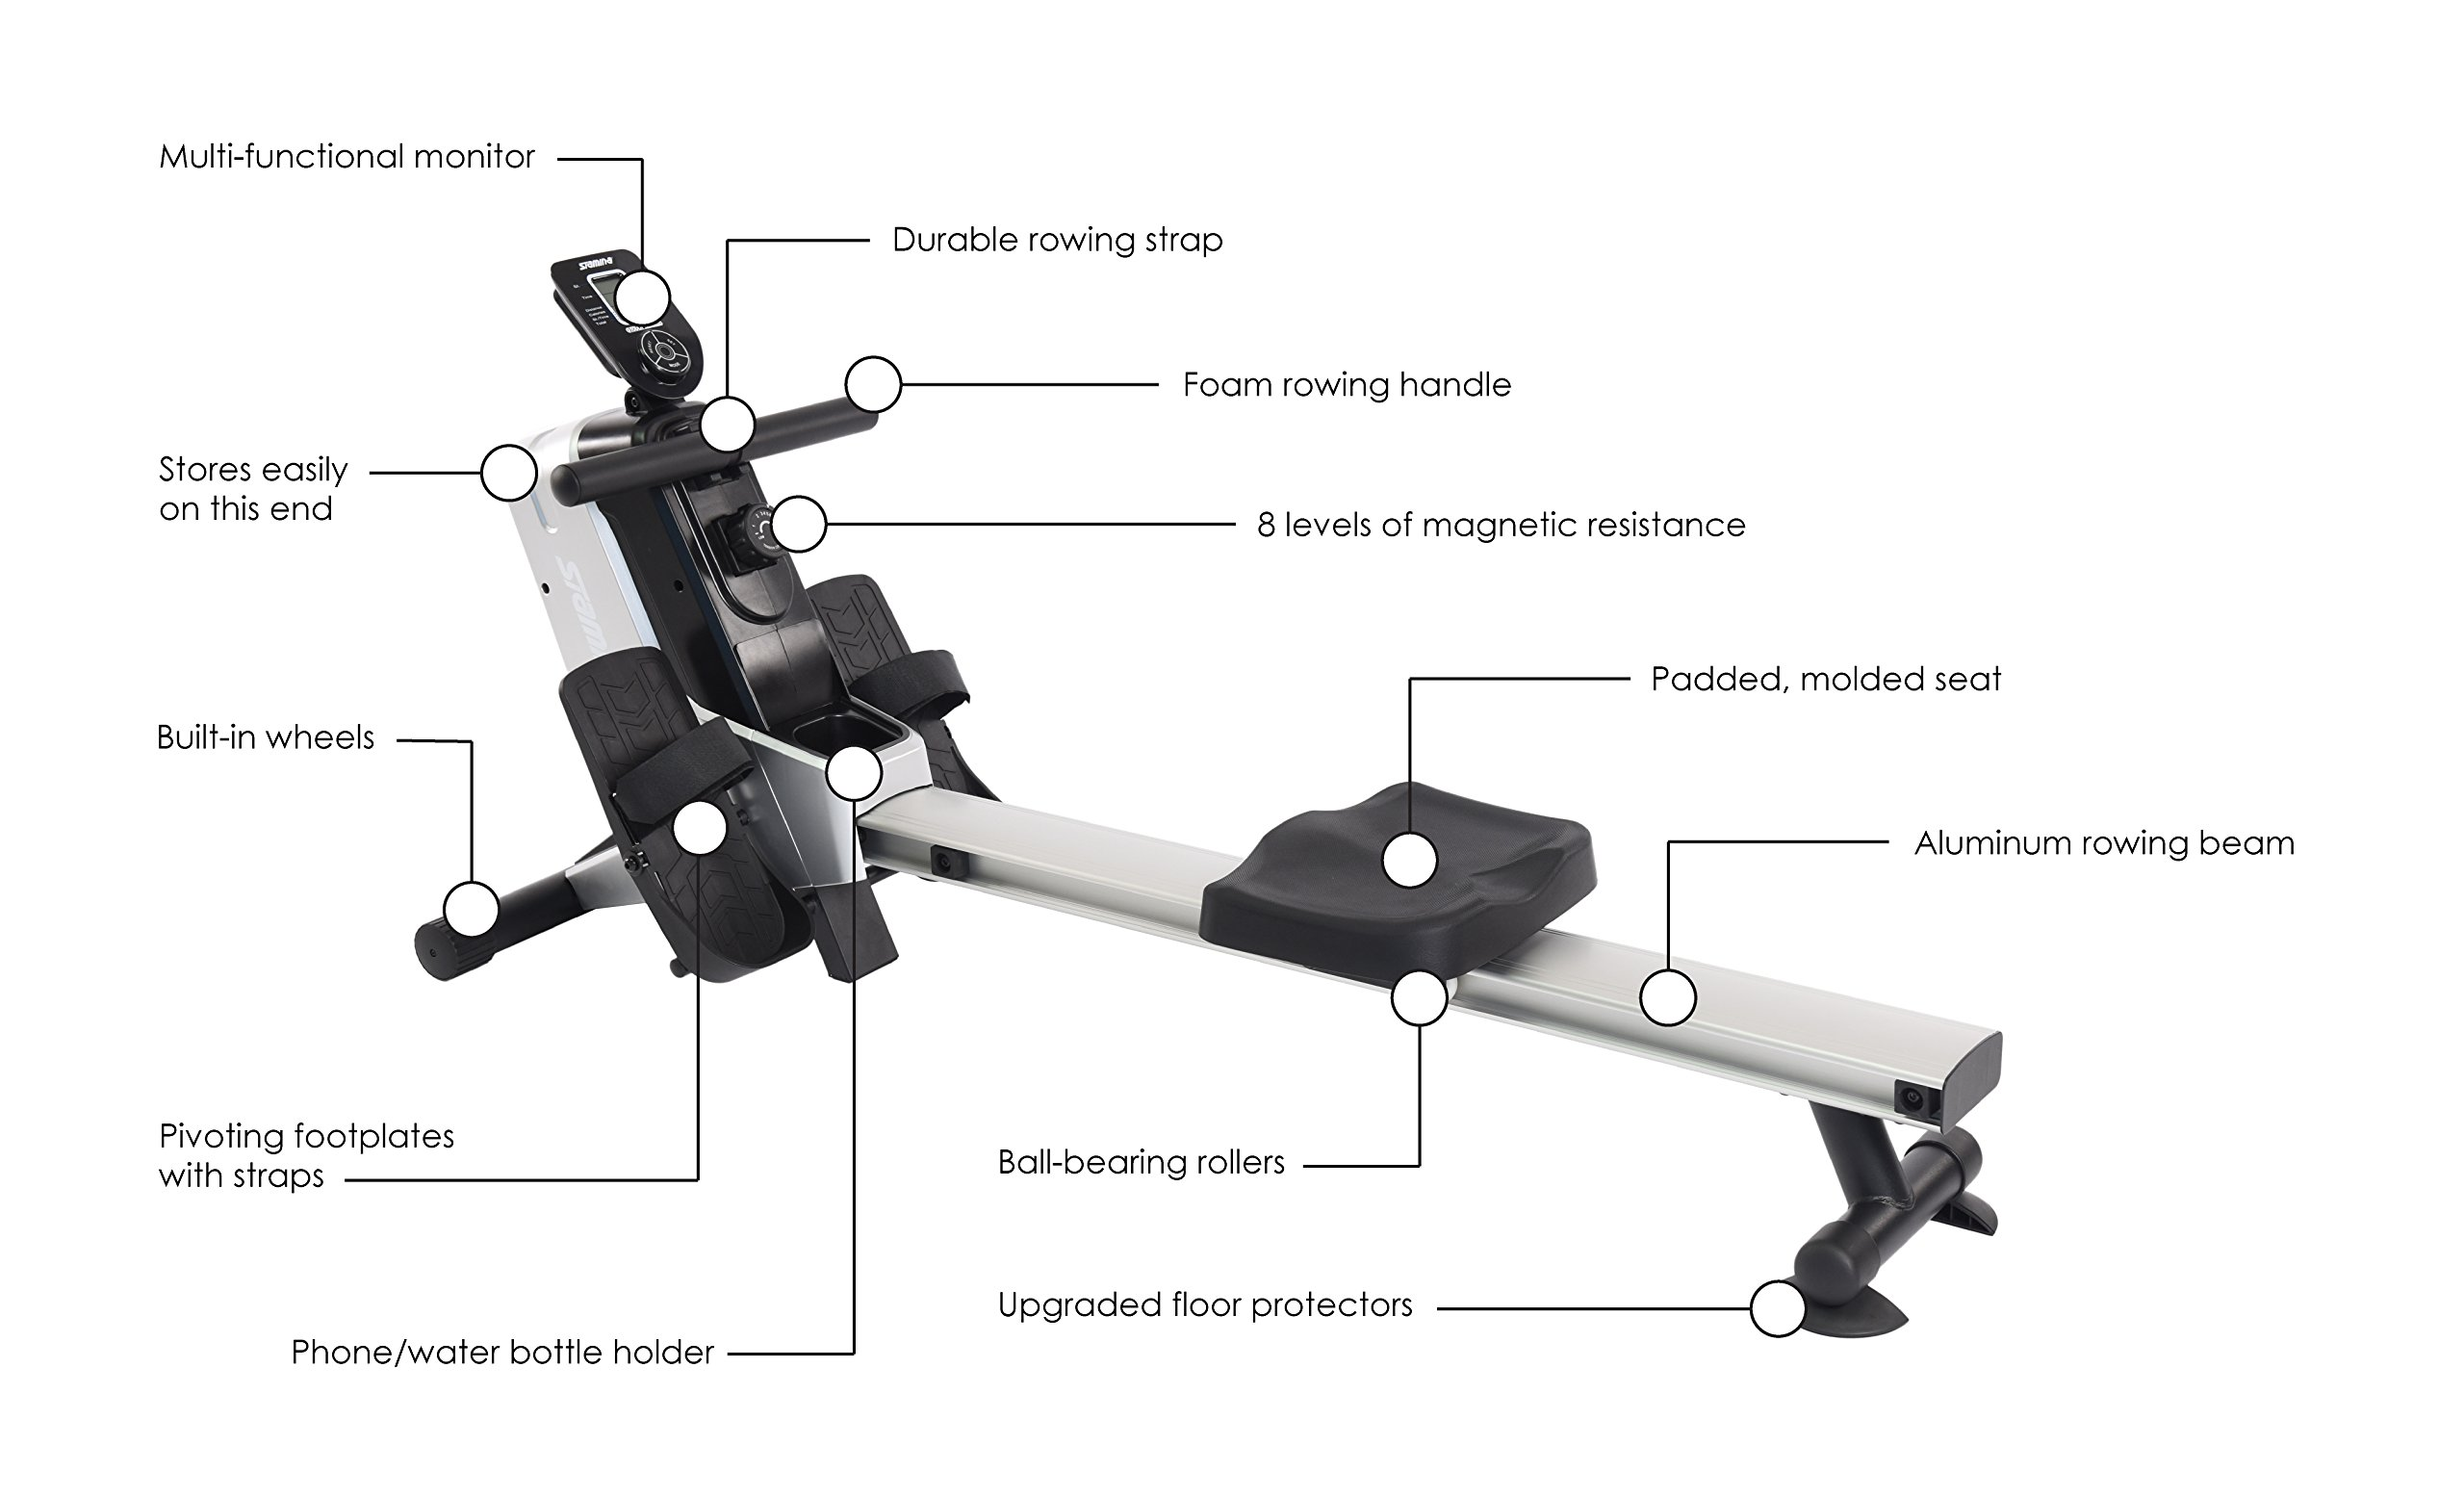 Stamina Multi-Level Magnetic Resistance Rower, Compact Rowing Machine by Stamina (Image #2)